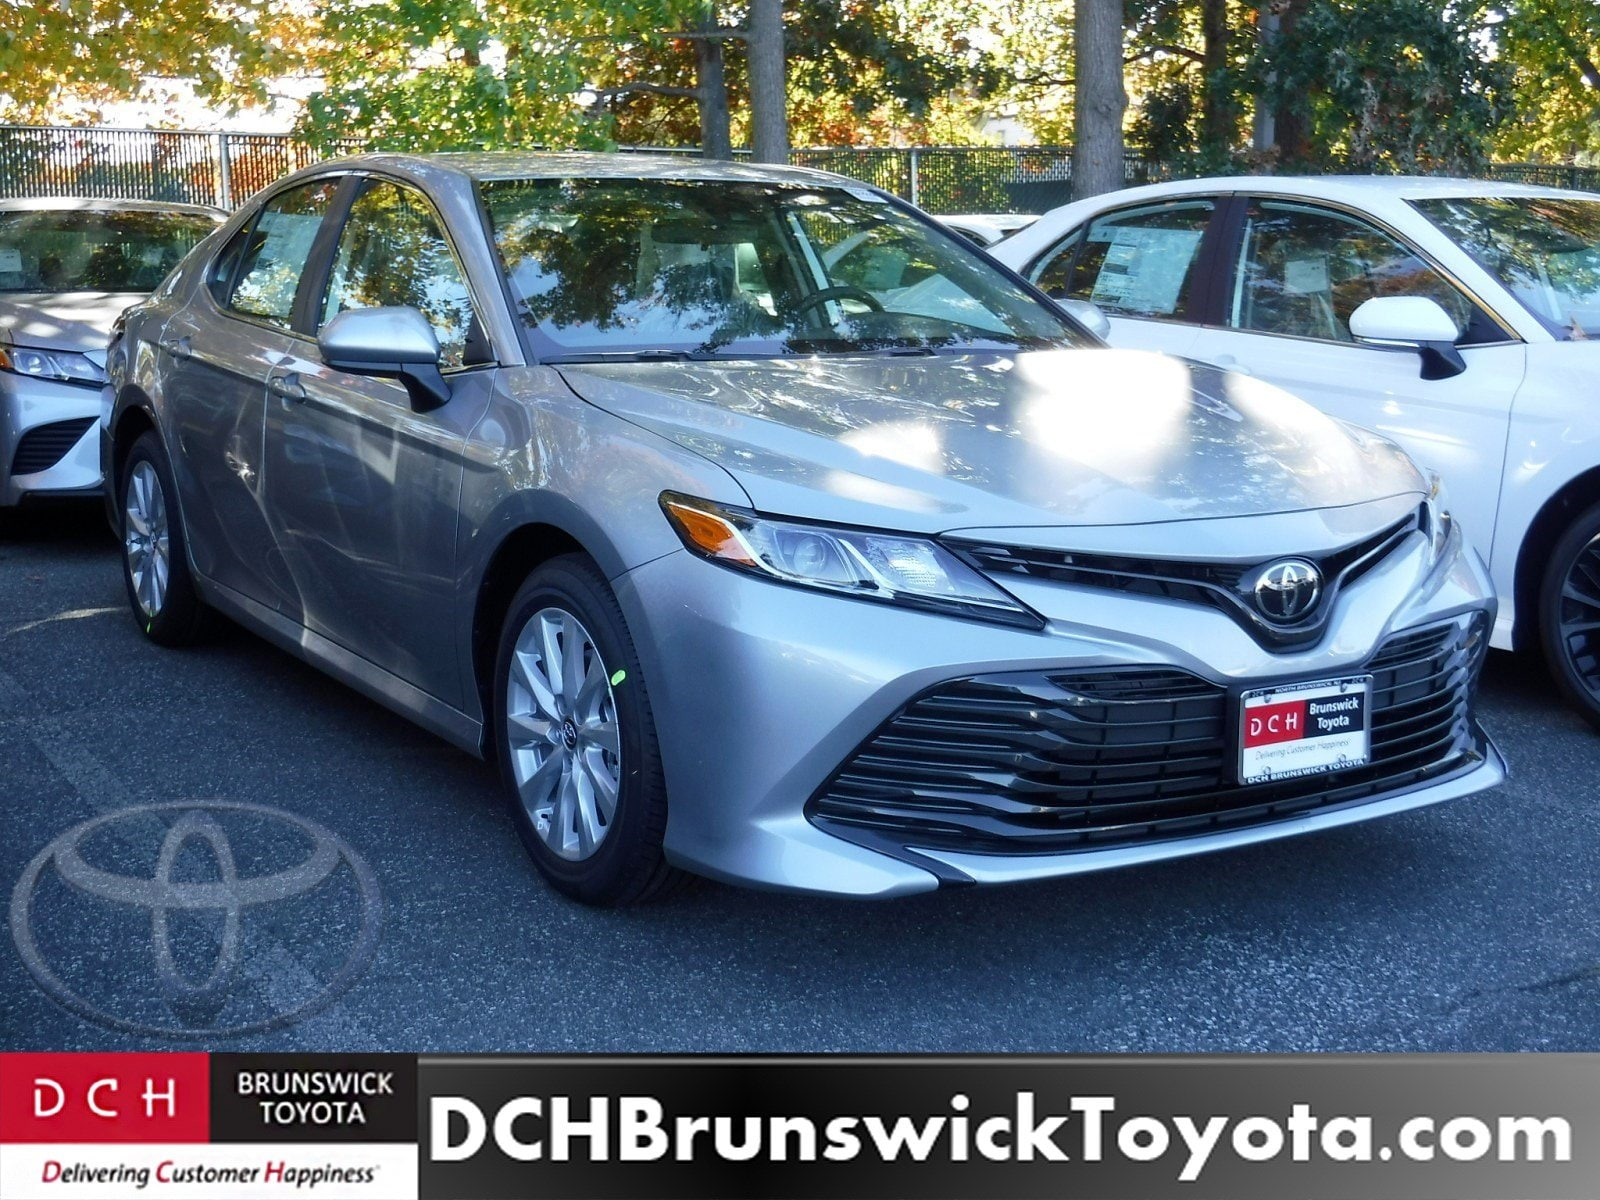 brand new toyota camry se yaris trd sportivo cvt 2018 for sale in north brunswick township nj dch 2019 le sedan